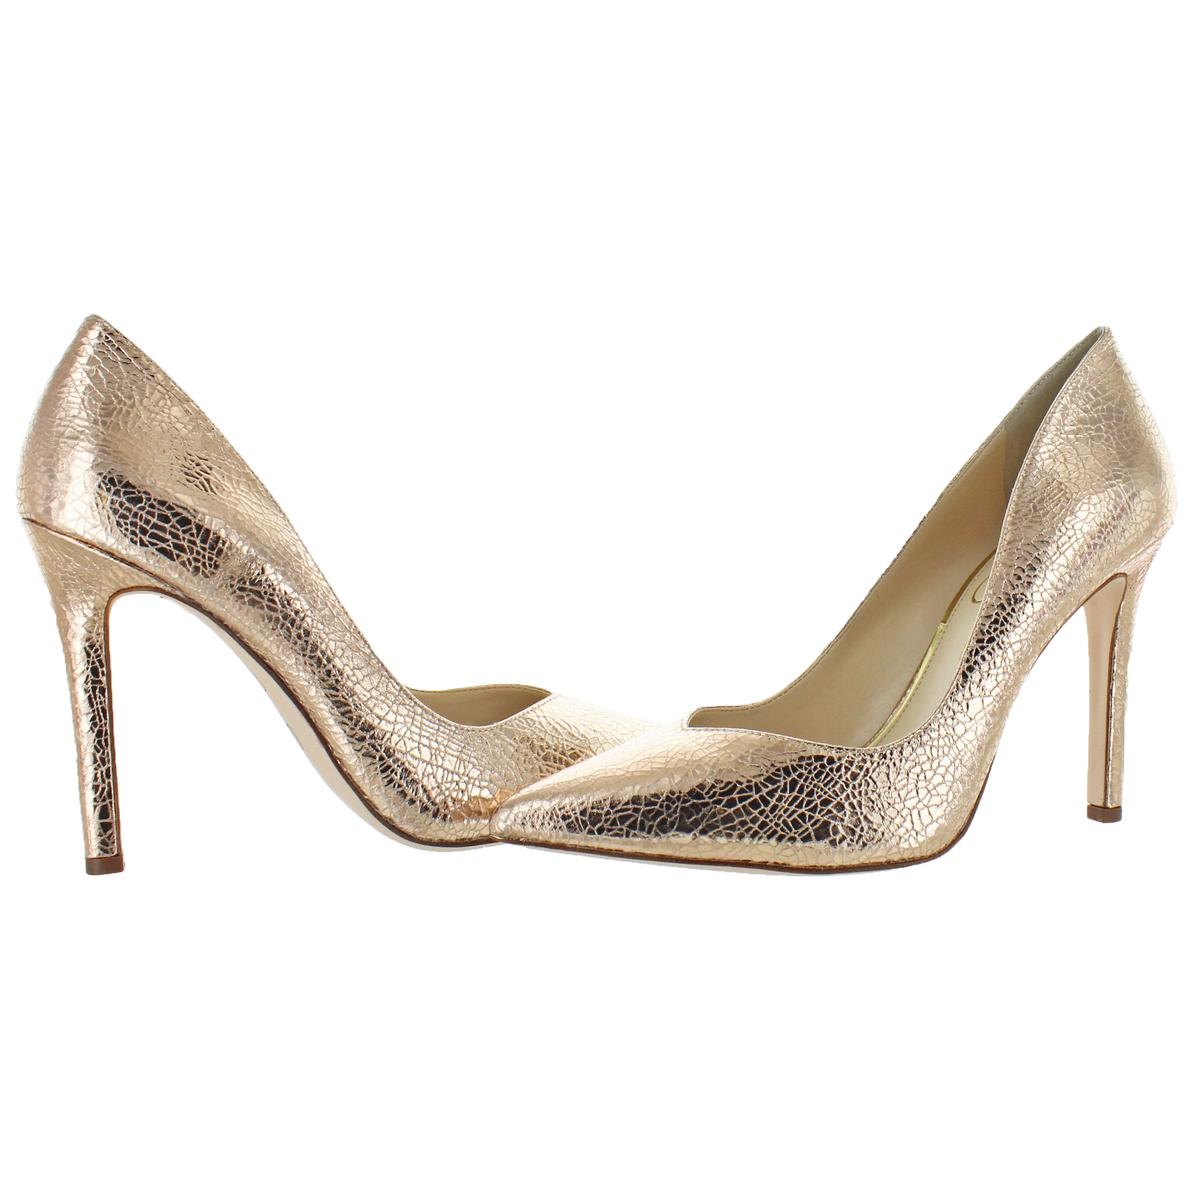 Jessica-Simpson-Women-039-s-Cylvie-Metallic-V-Cut-Classic-Pumps-Heels-Shoes thumbnail 3